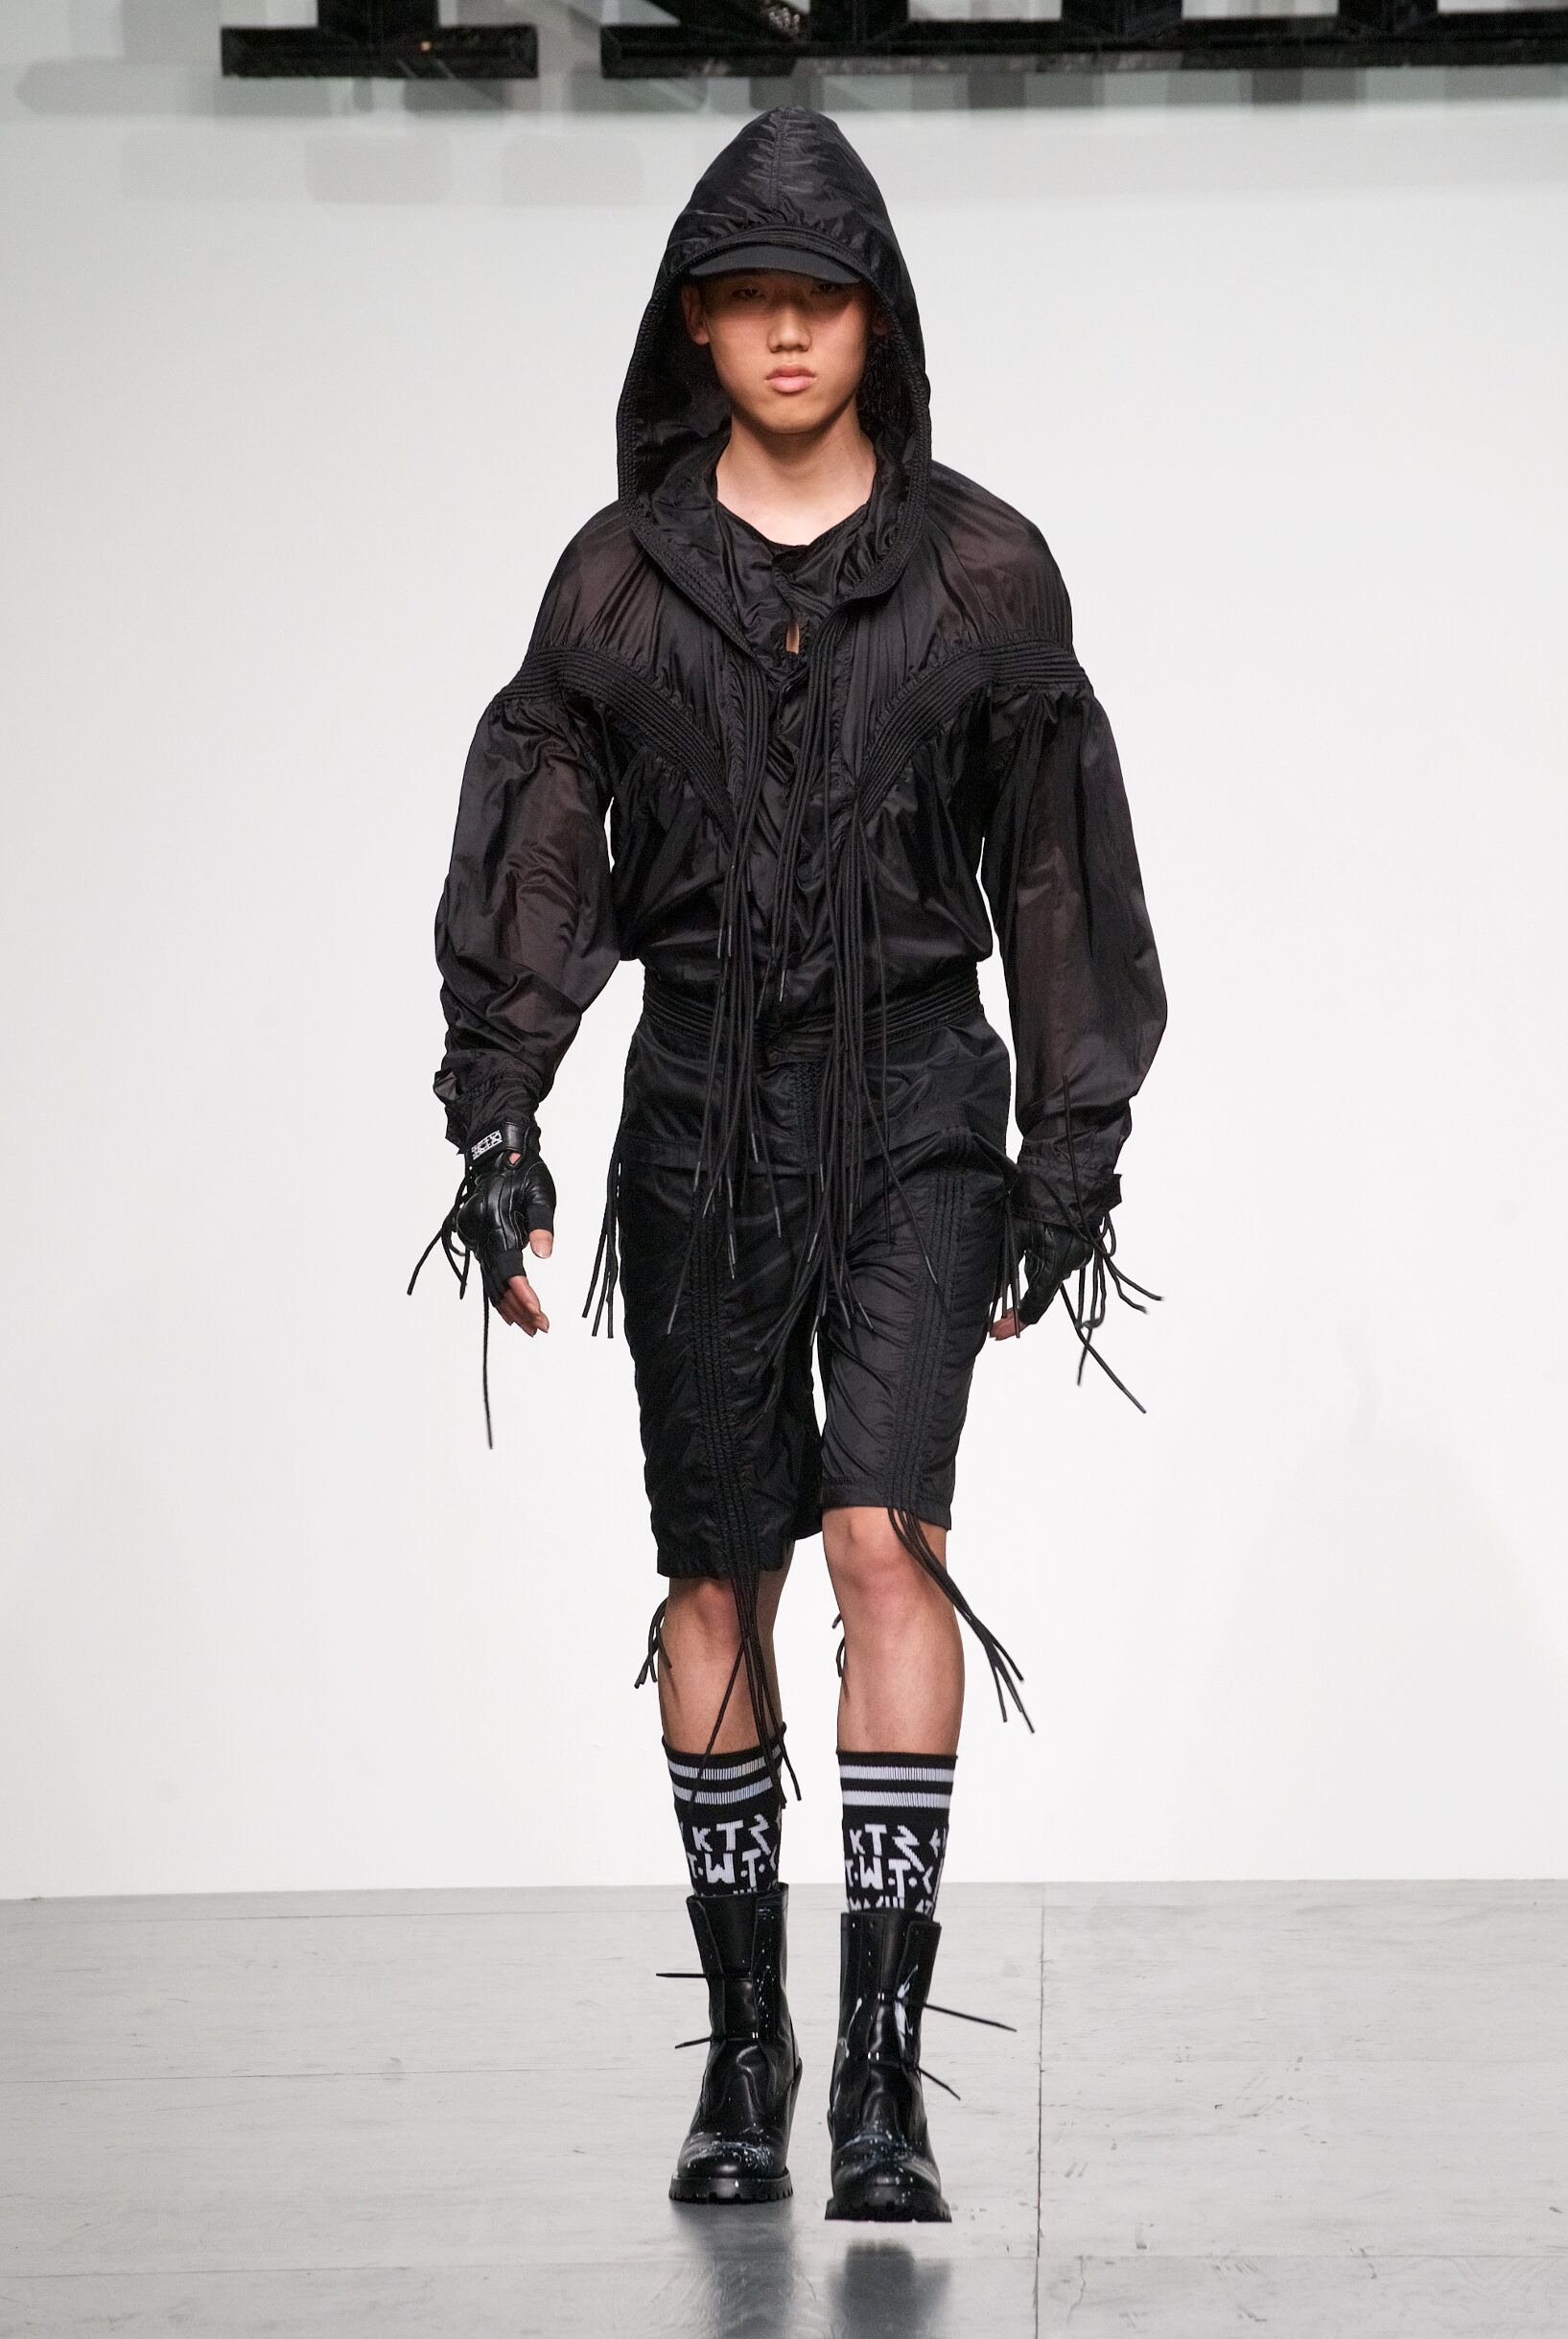 Fashion Man Model KTZ Catwalk 2018